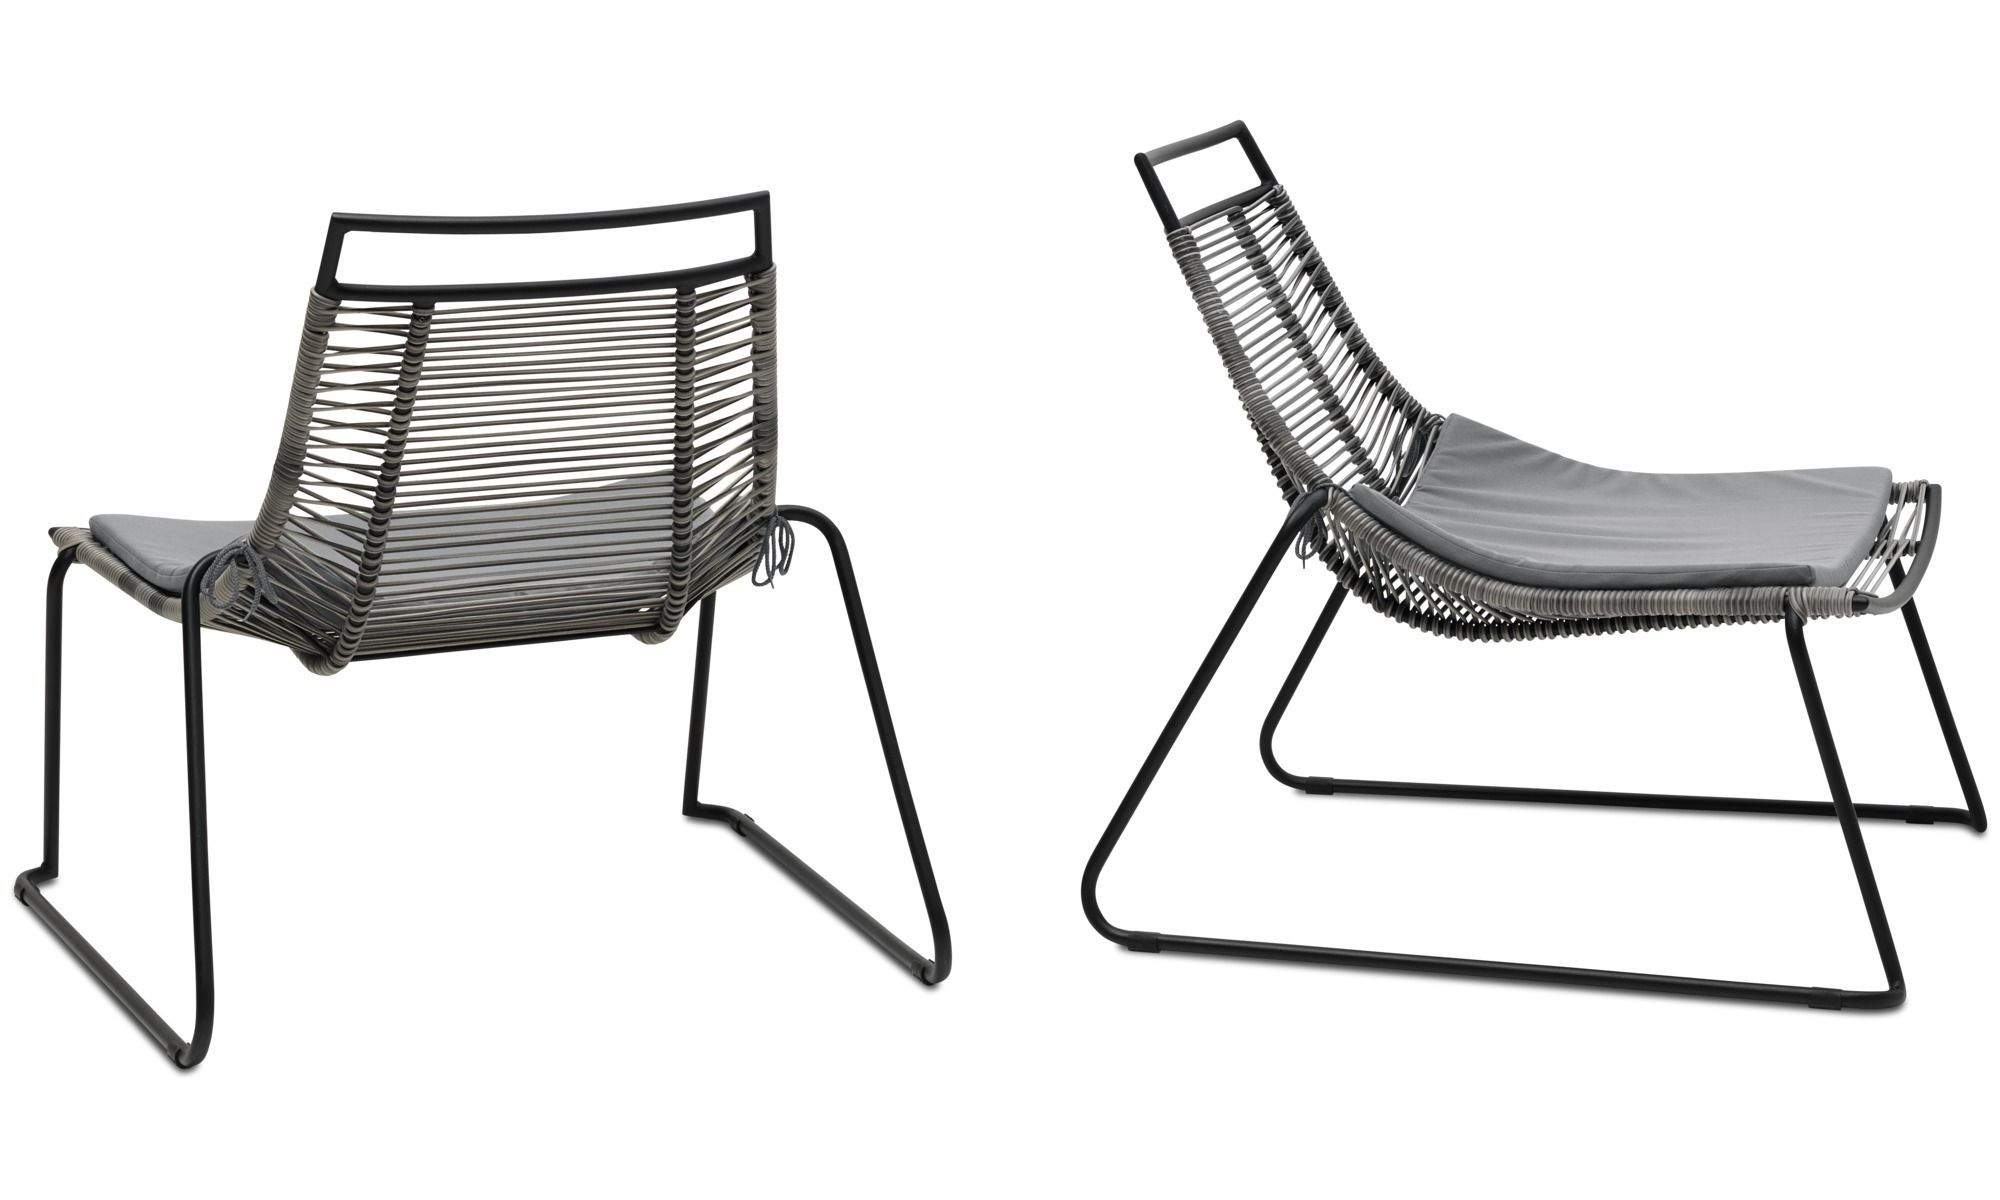 outdoor chairs elba lounge chair for in and outdoor use iw1cfsdz of gartensessel metall